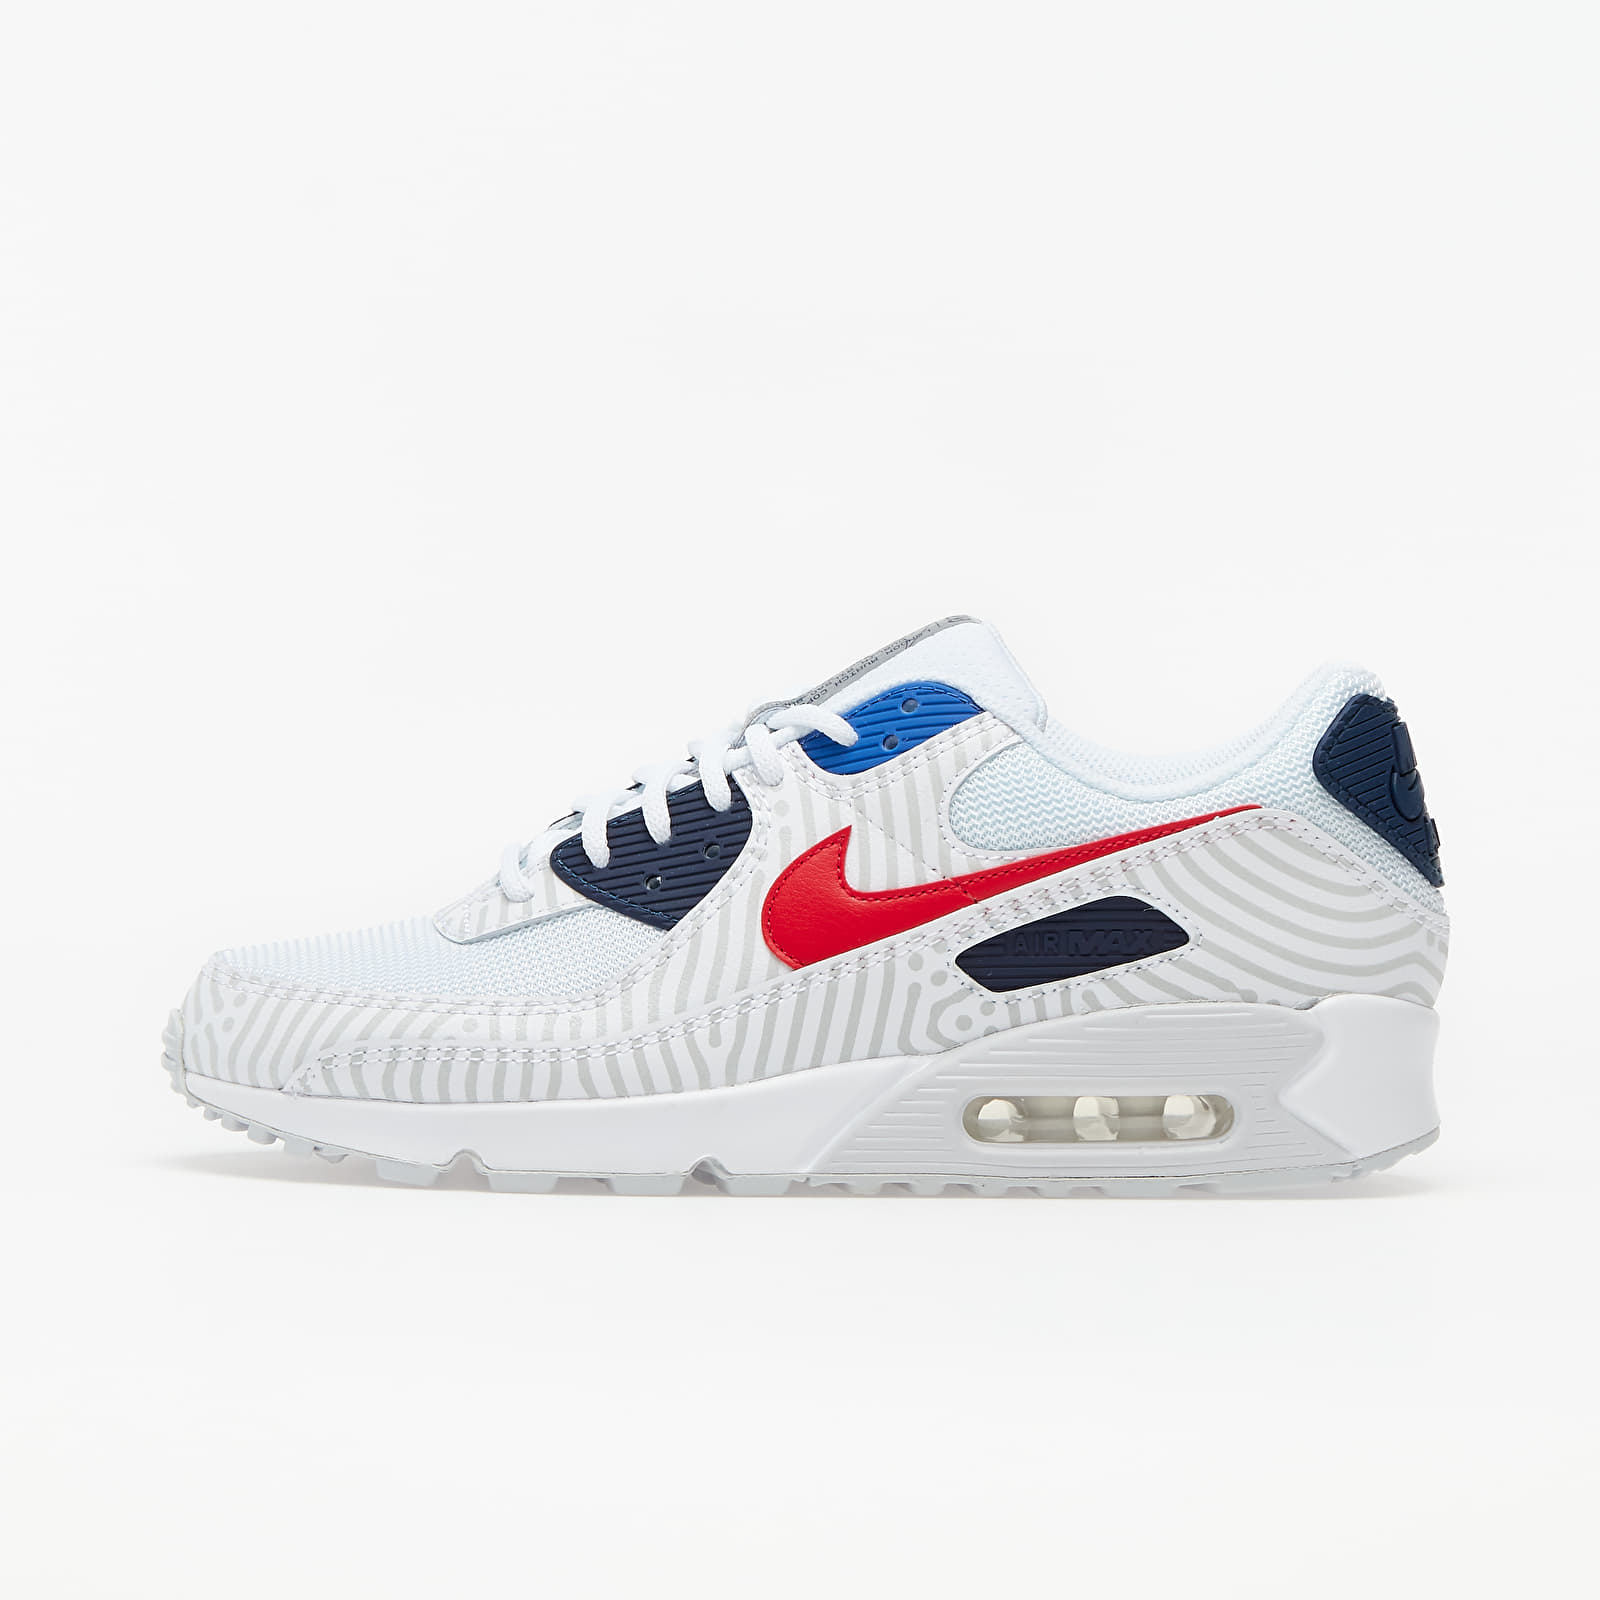 Chaussures et baskets homme Nike Air Max 90 White/ University Red-Midnight Navy